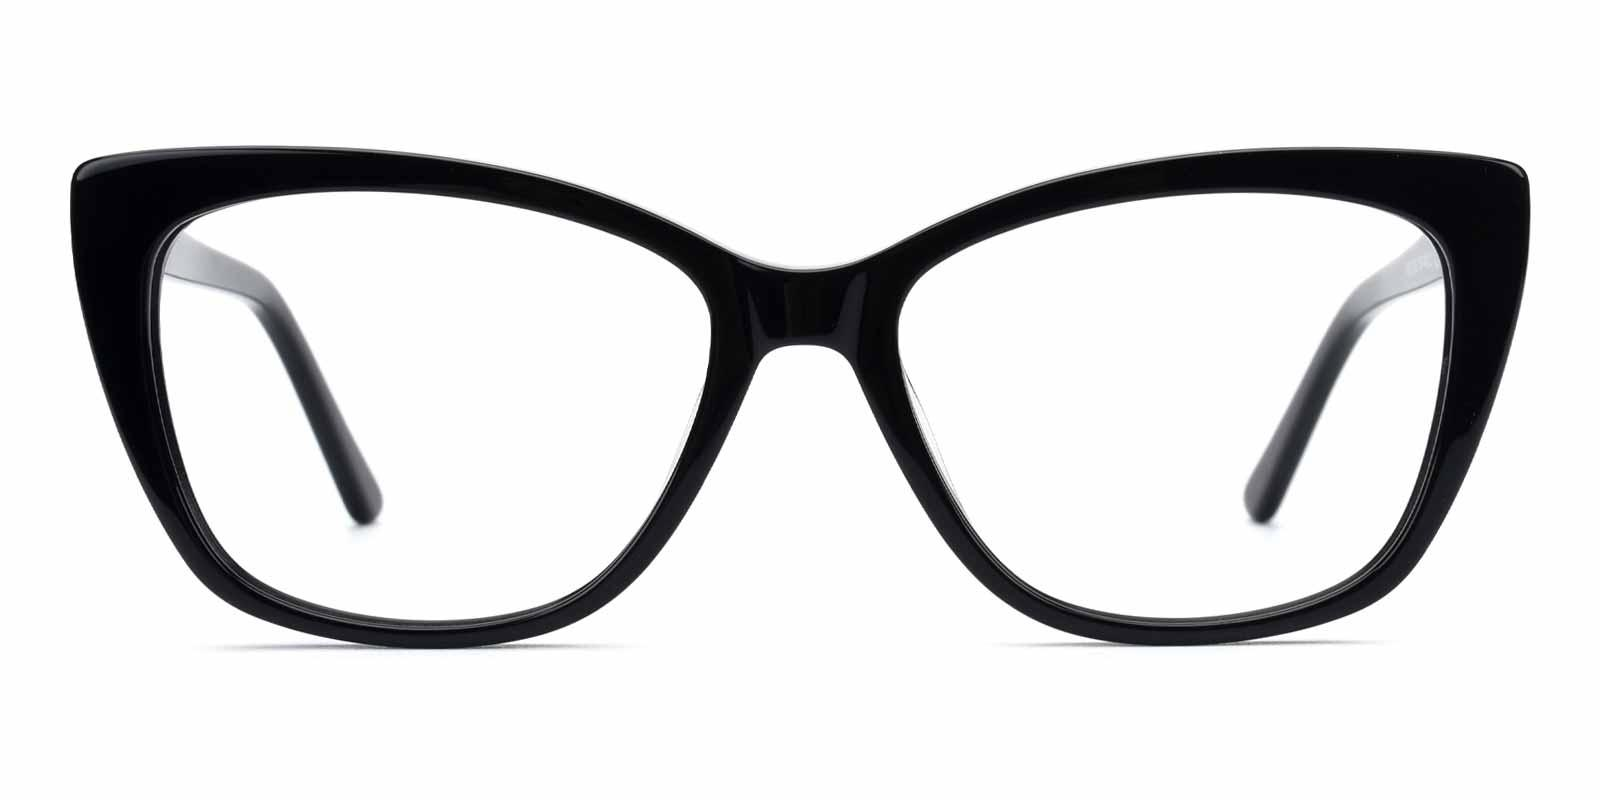 Kiko-Black-Cat-Acetate-Eyeglasses-additional2